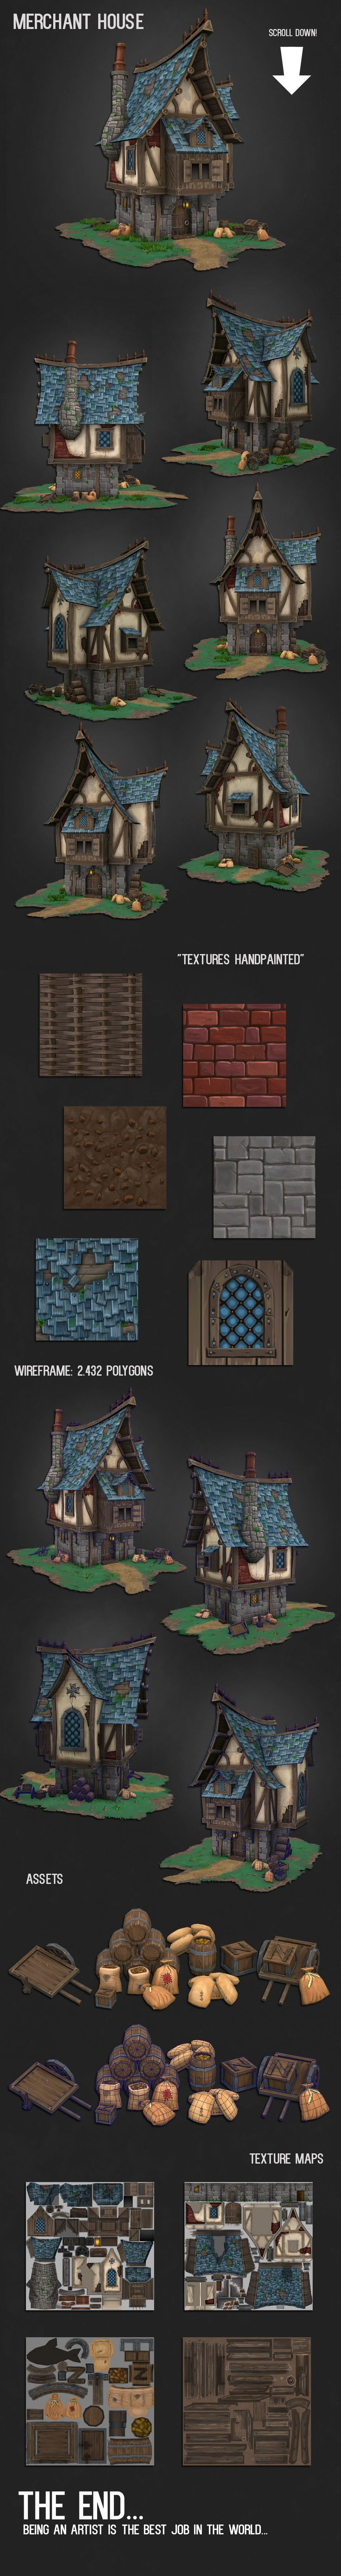 What Are You Working On? 2014 Edition - Page 274 - Polycount Forum